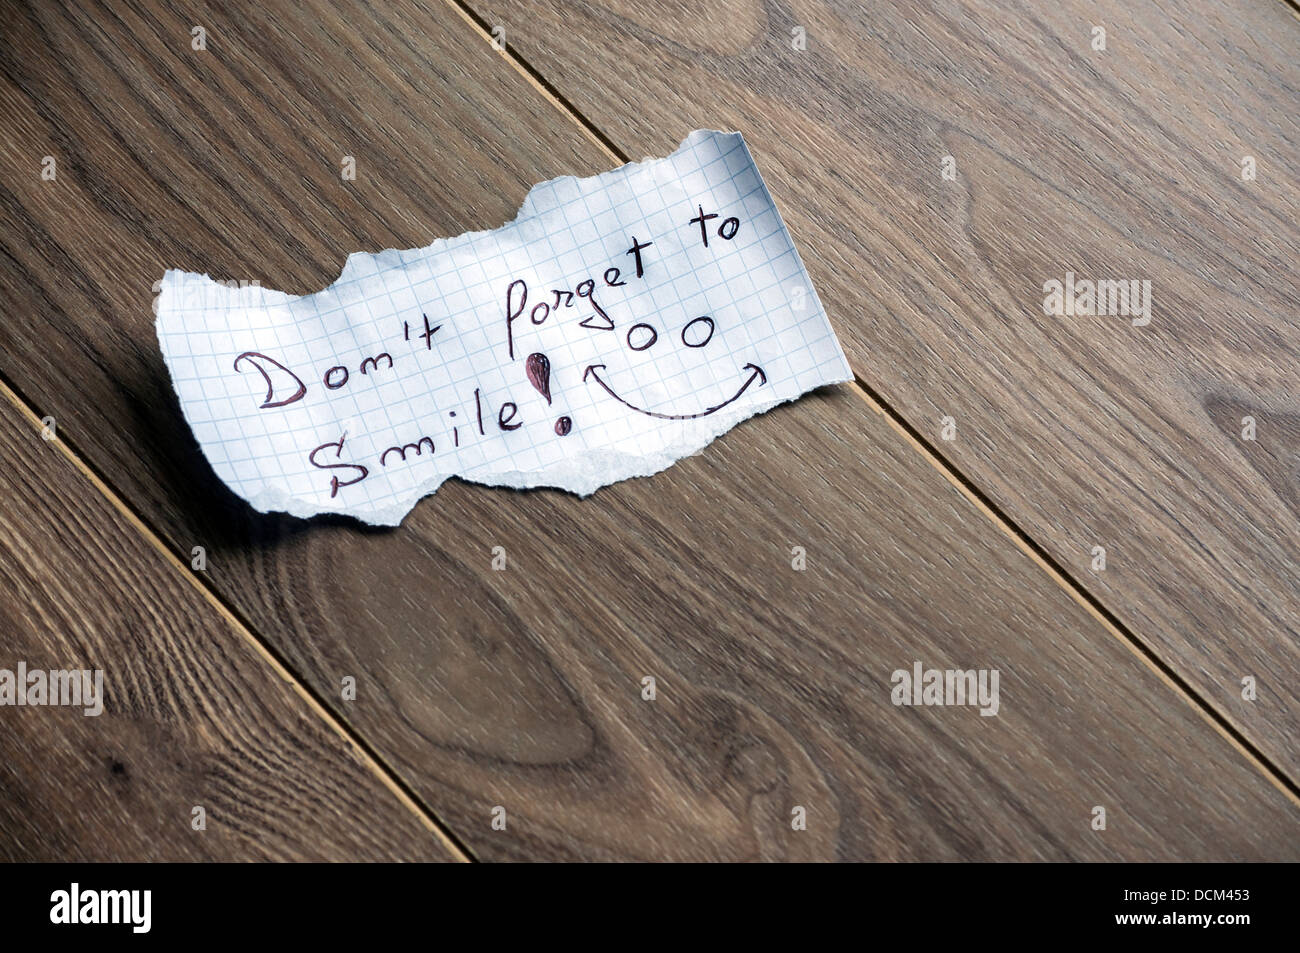 Don't forget to Smile - Hand writing text on a piece of paper on wood background with space for text - Stock Image